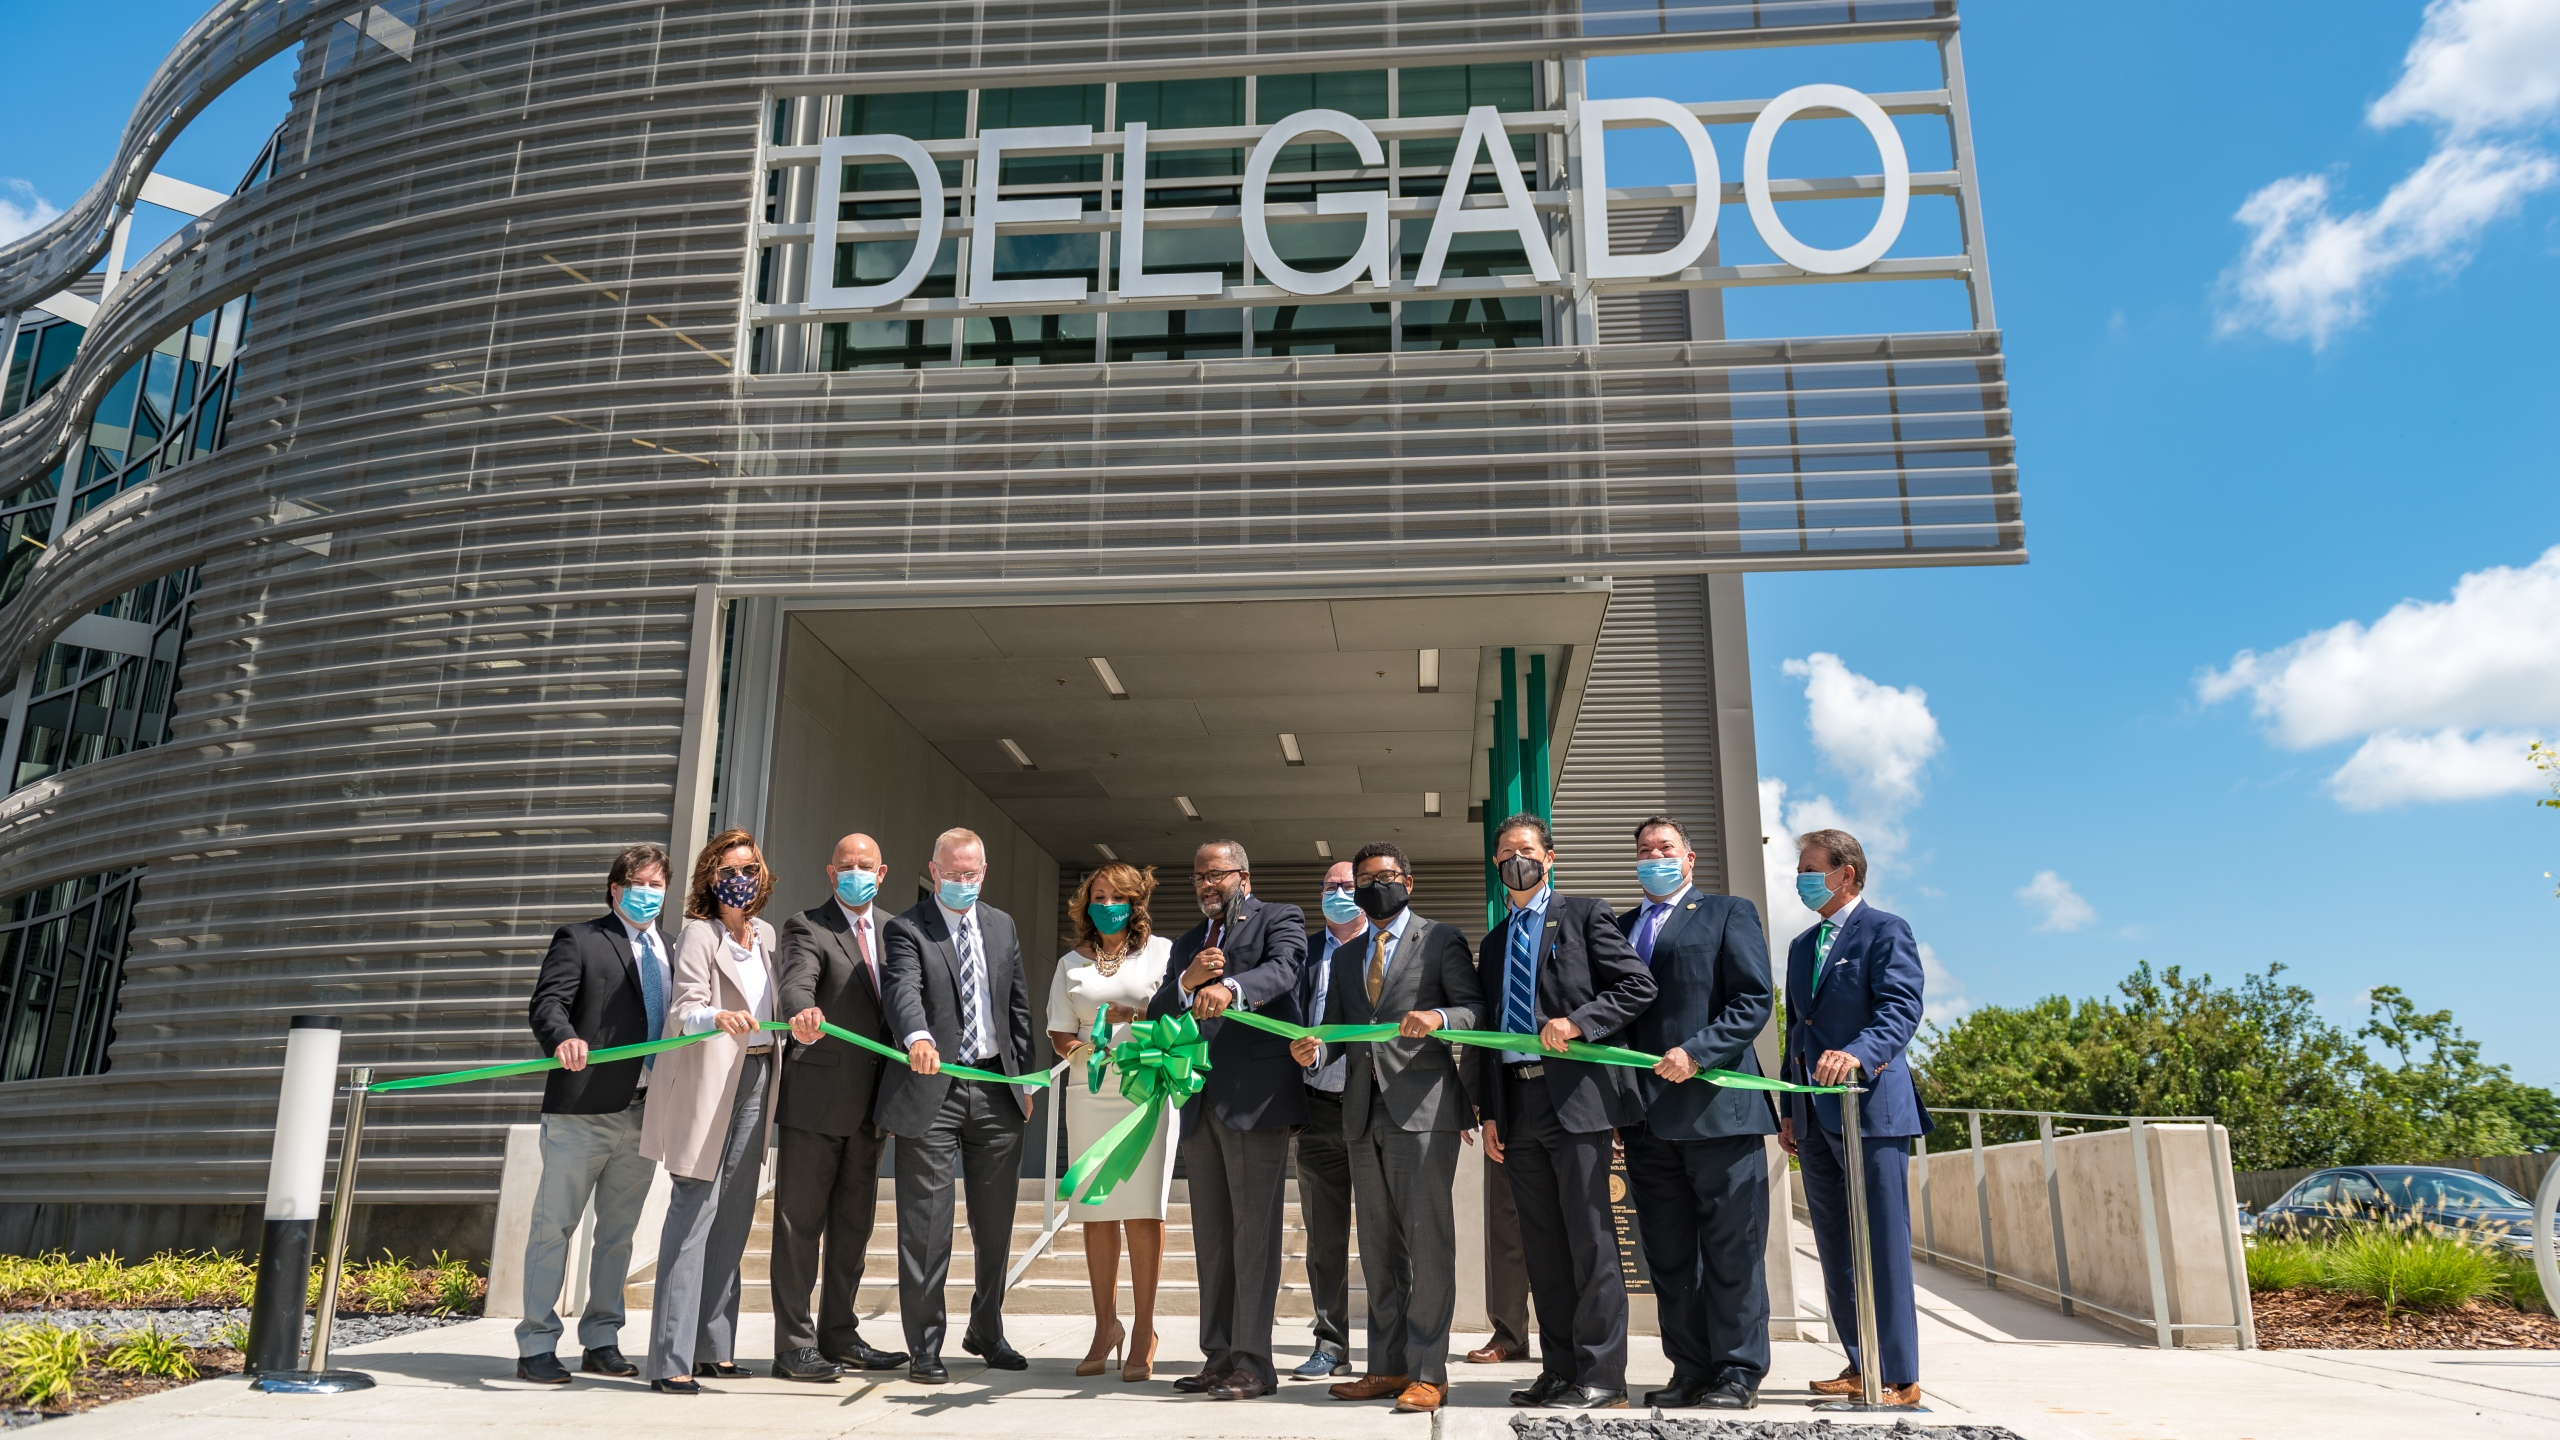 https://wgno.com/news/delgado-cuts-ribbon-on-advanced-technology-center-at-west-bank-campus/(opens in a new tab)